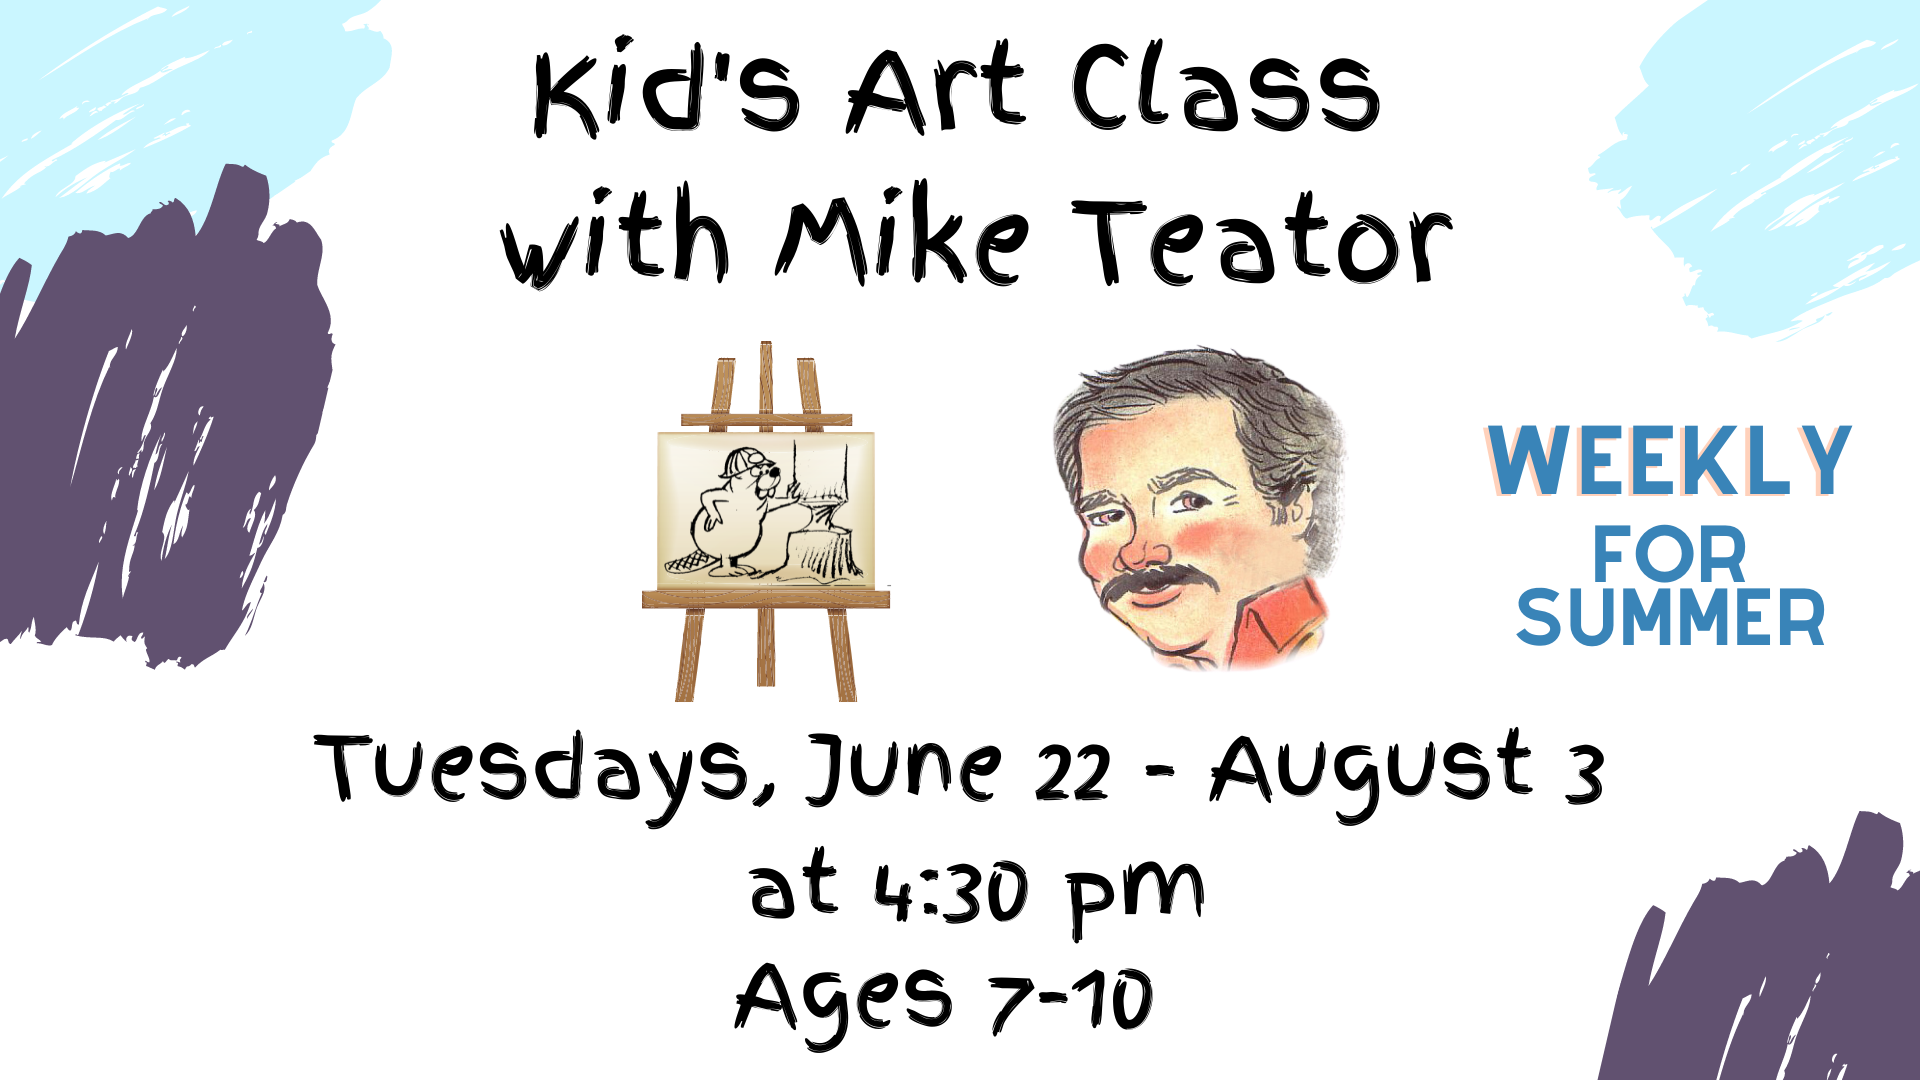 Online Kid's Art Class with Mike Teator, Ages 7-10